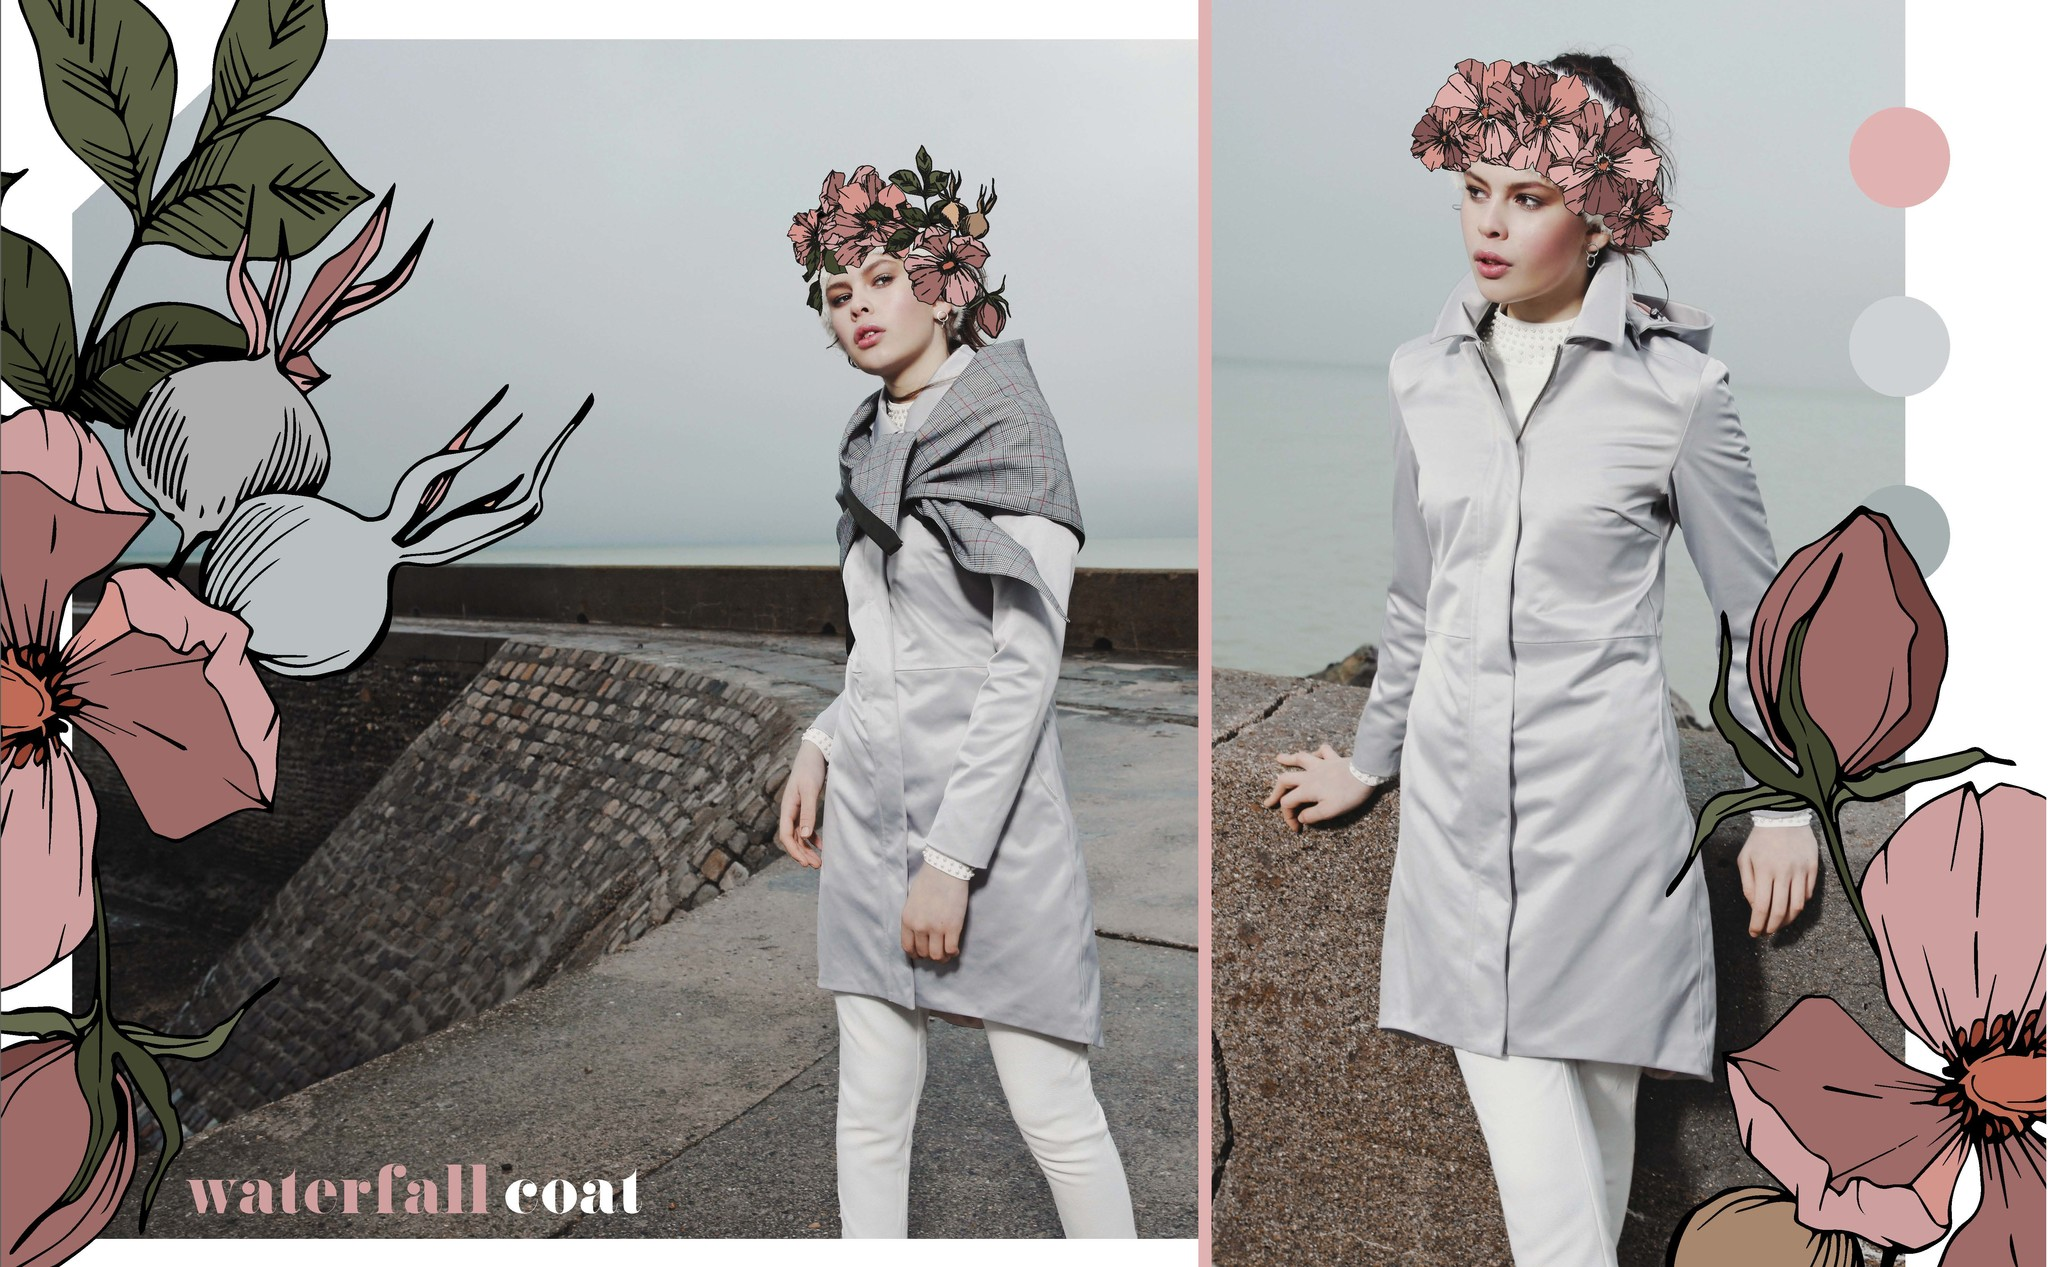 The waterfall coat in silver